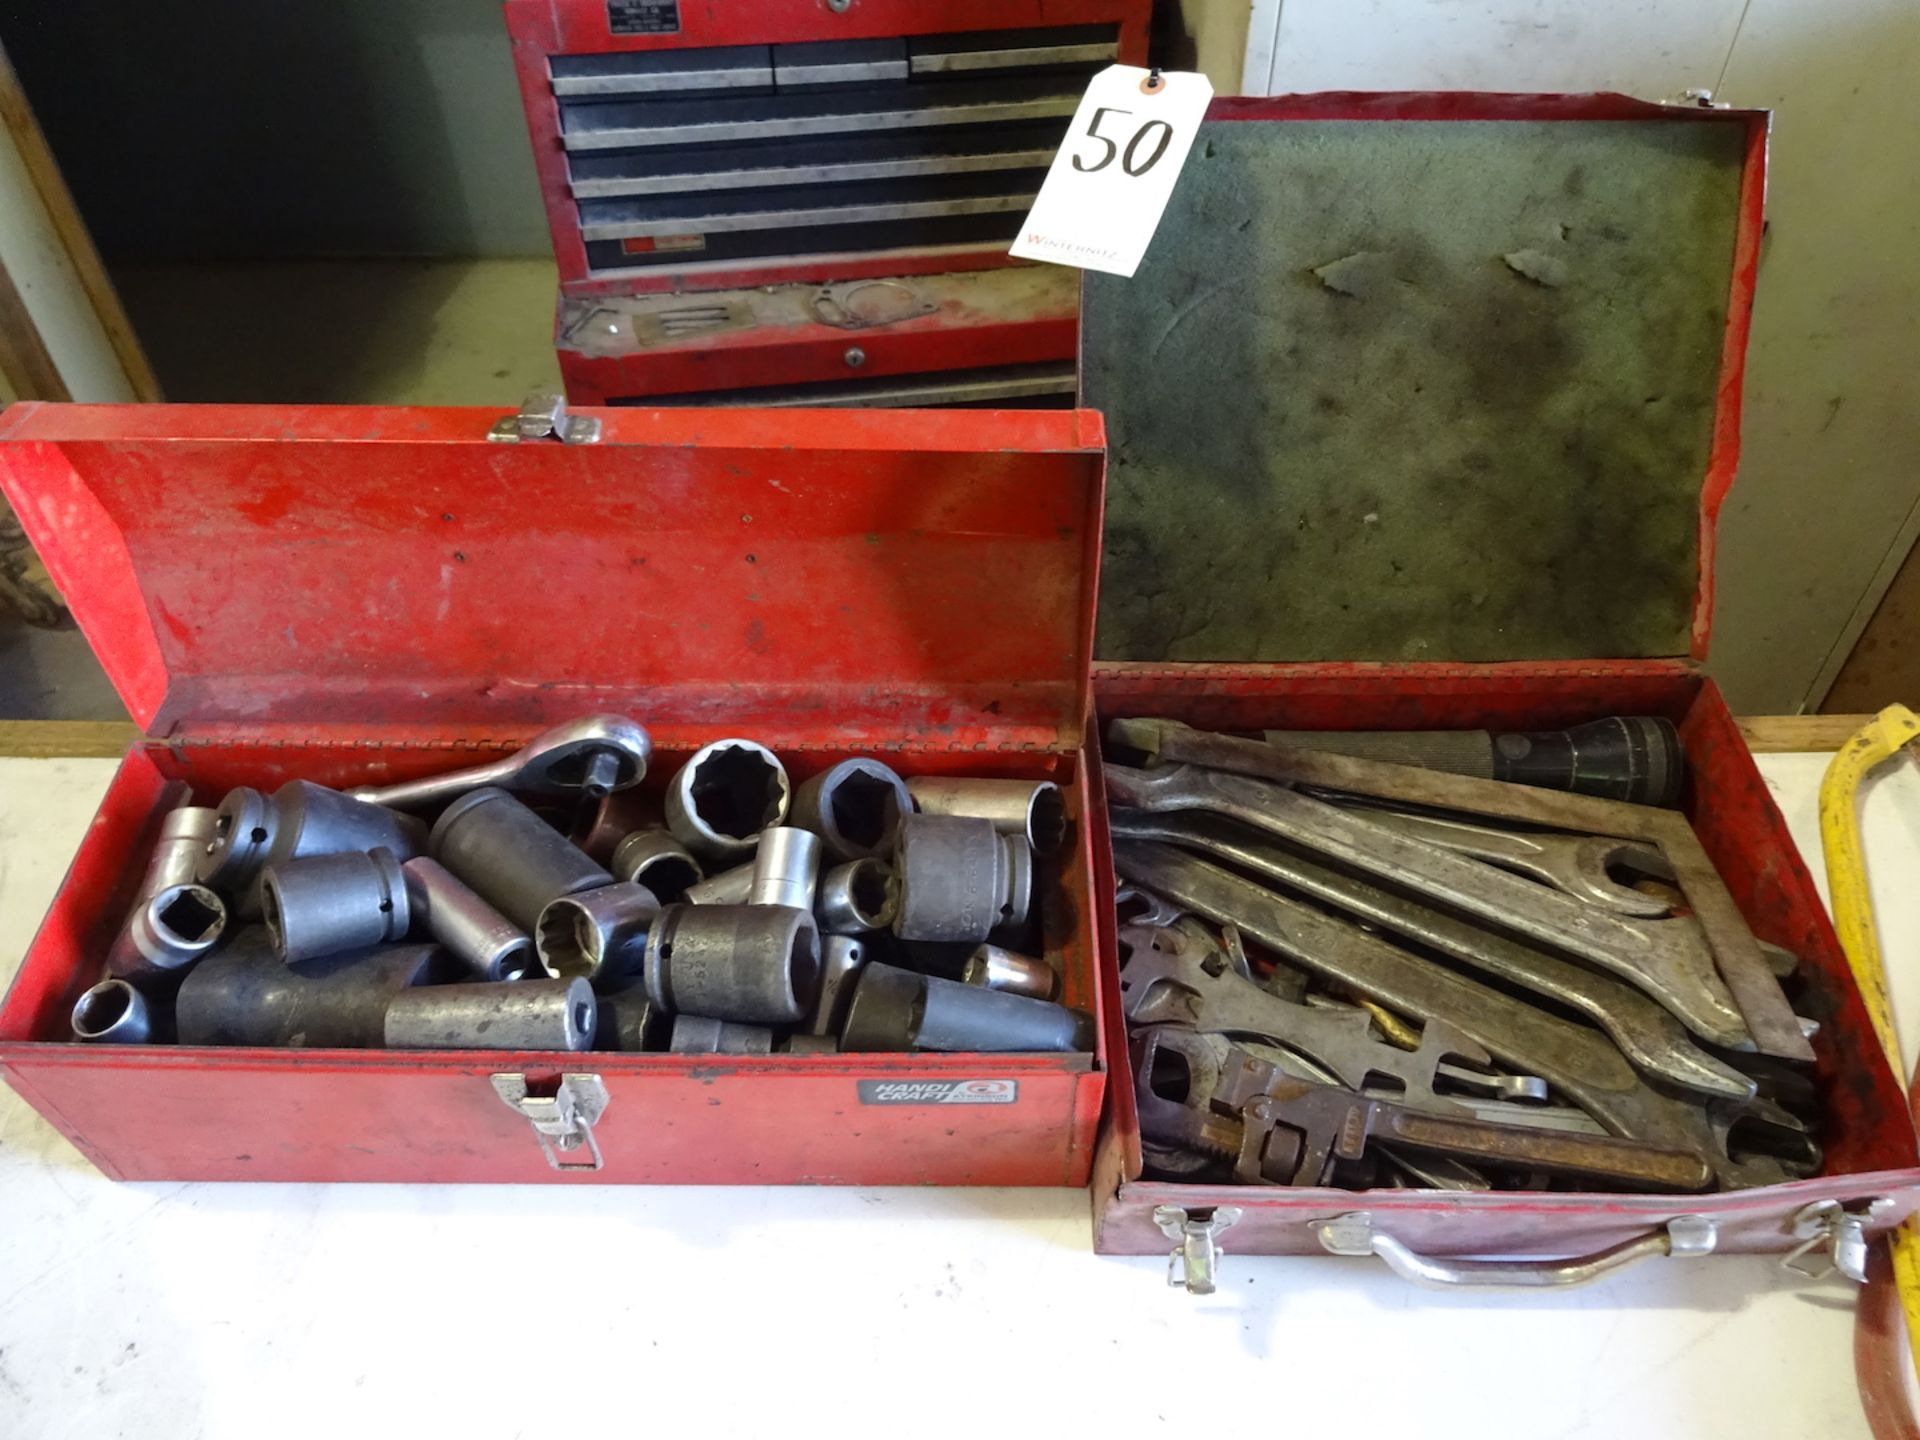 Lot 50 - (2) RED METAL TOOLBOXES WITH IMPACT SOCKETS, RATCHET, ASSORTED WRENCHES AND MISC.